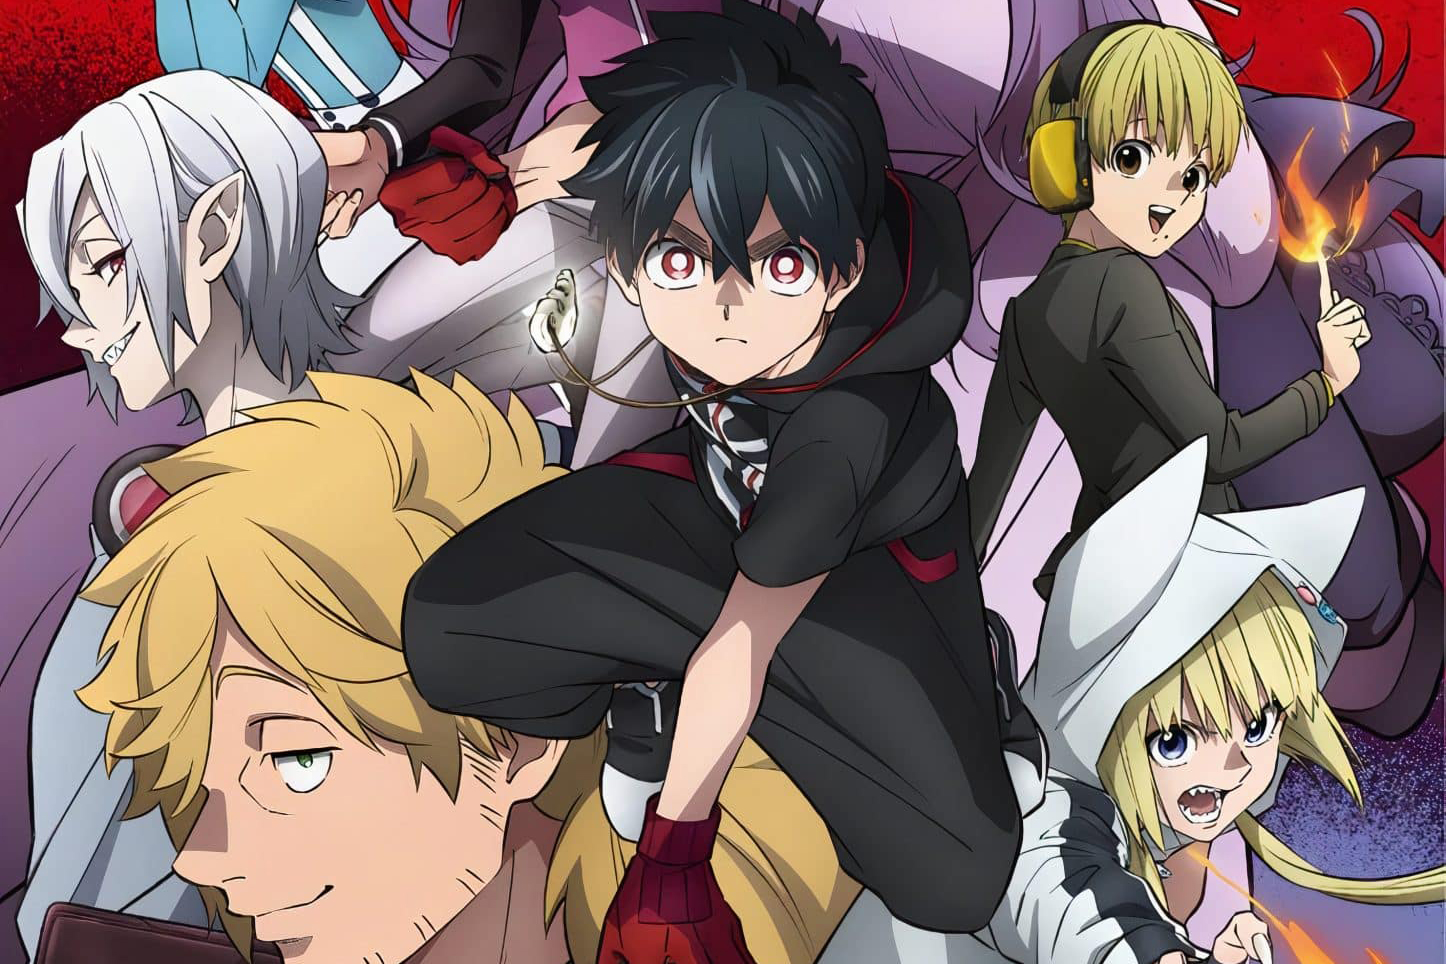 Most Anticipated Anime Coming Out in January 2021 - Kemono Jihen